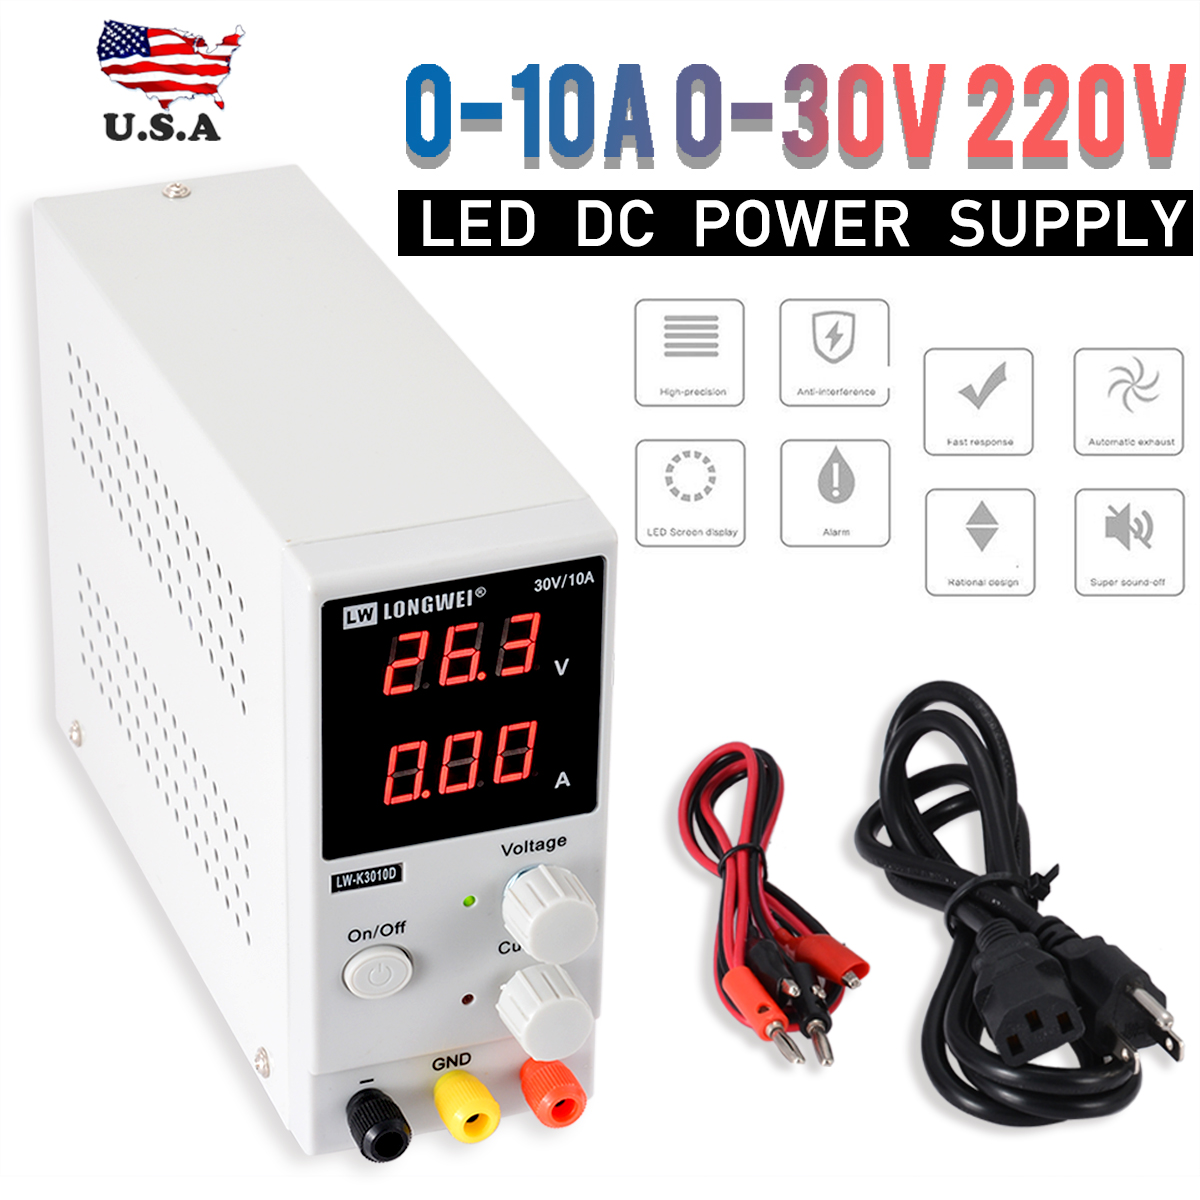 New 0 10A 0 30V 220V LED DC Adjustable Precision Variable Digital Power Supply Laboratory Power Supply Max.300W Durable